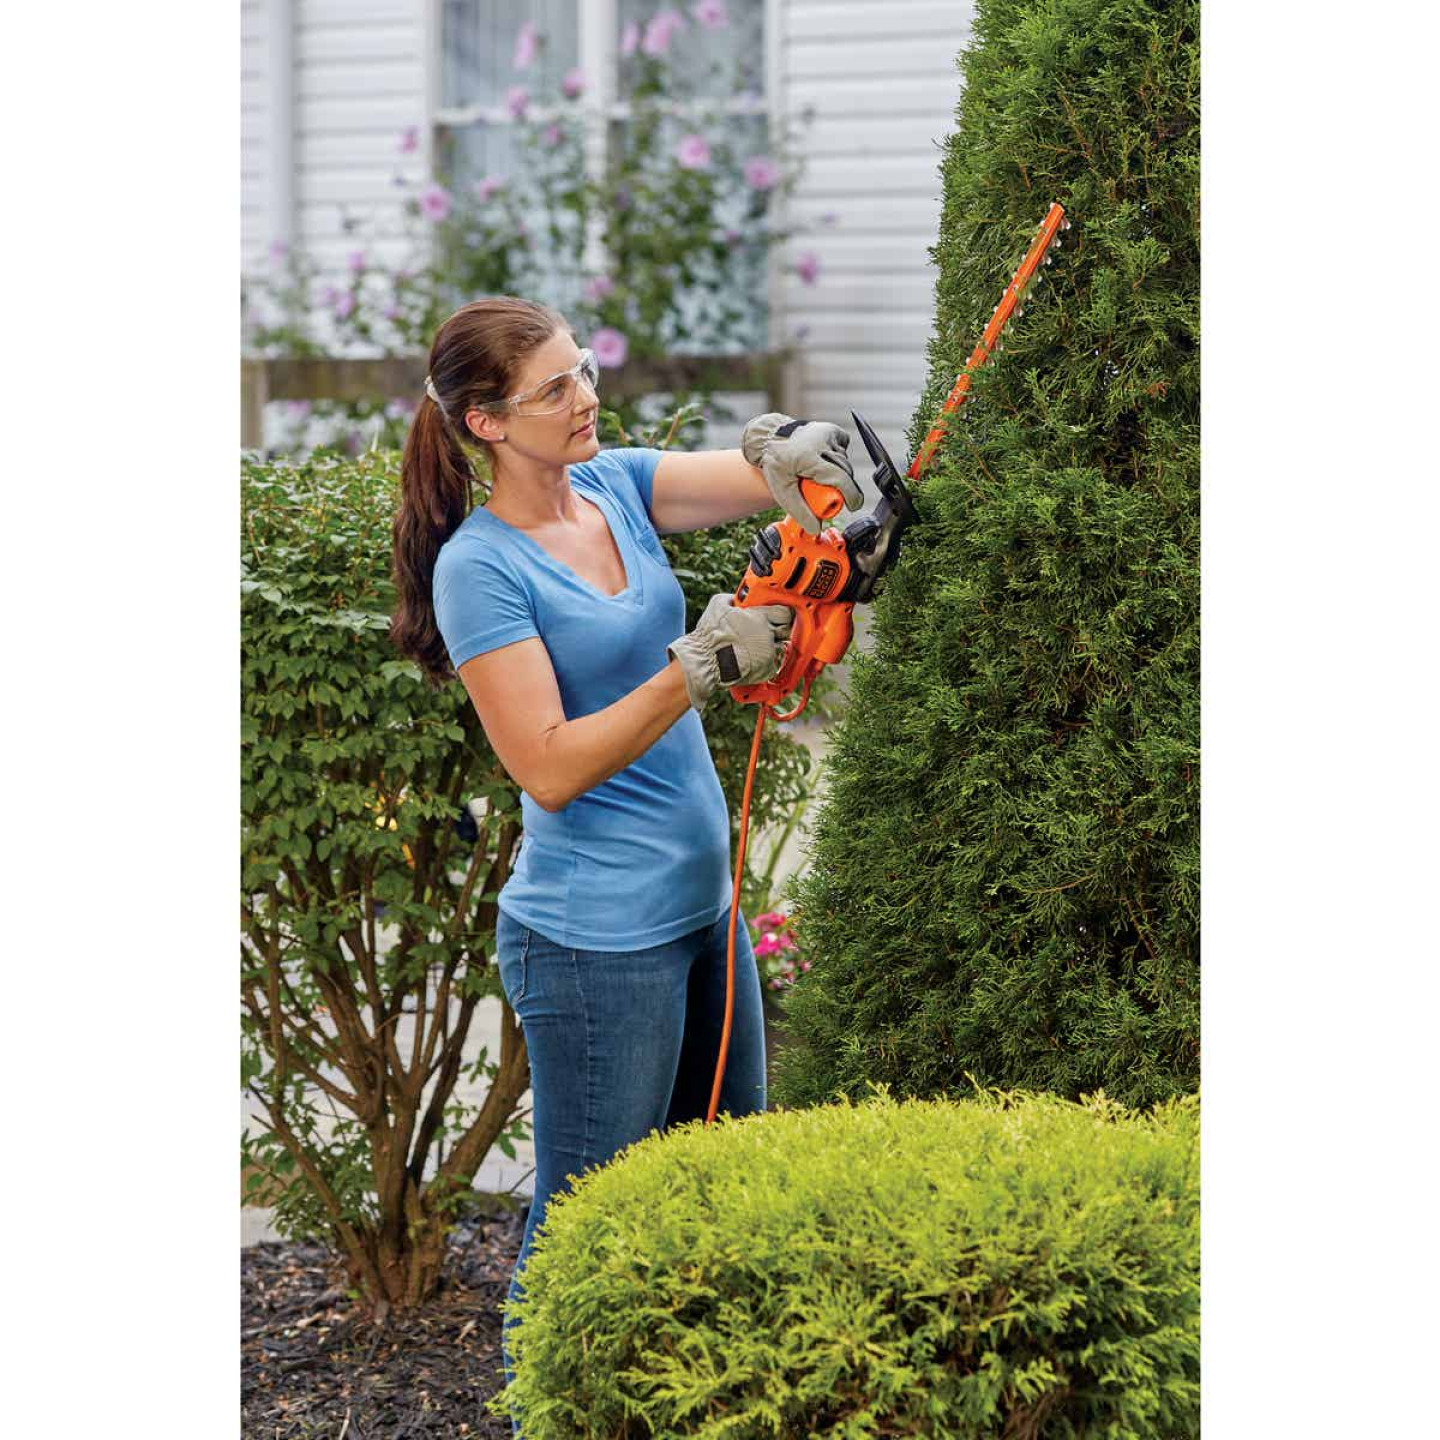 Black & Decker 16 In. 3A Corded Electric Hedge Trimmer Image 3